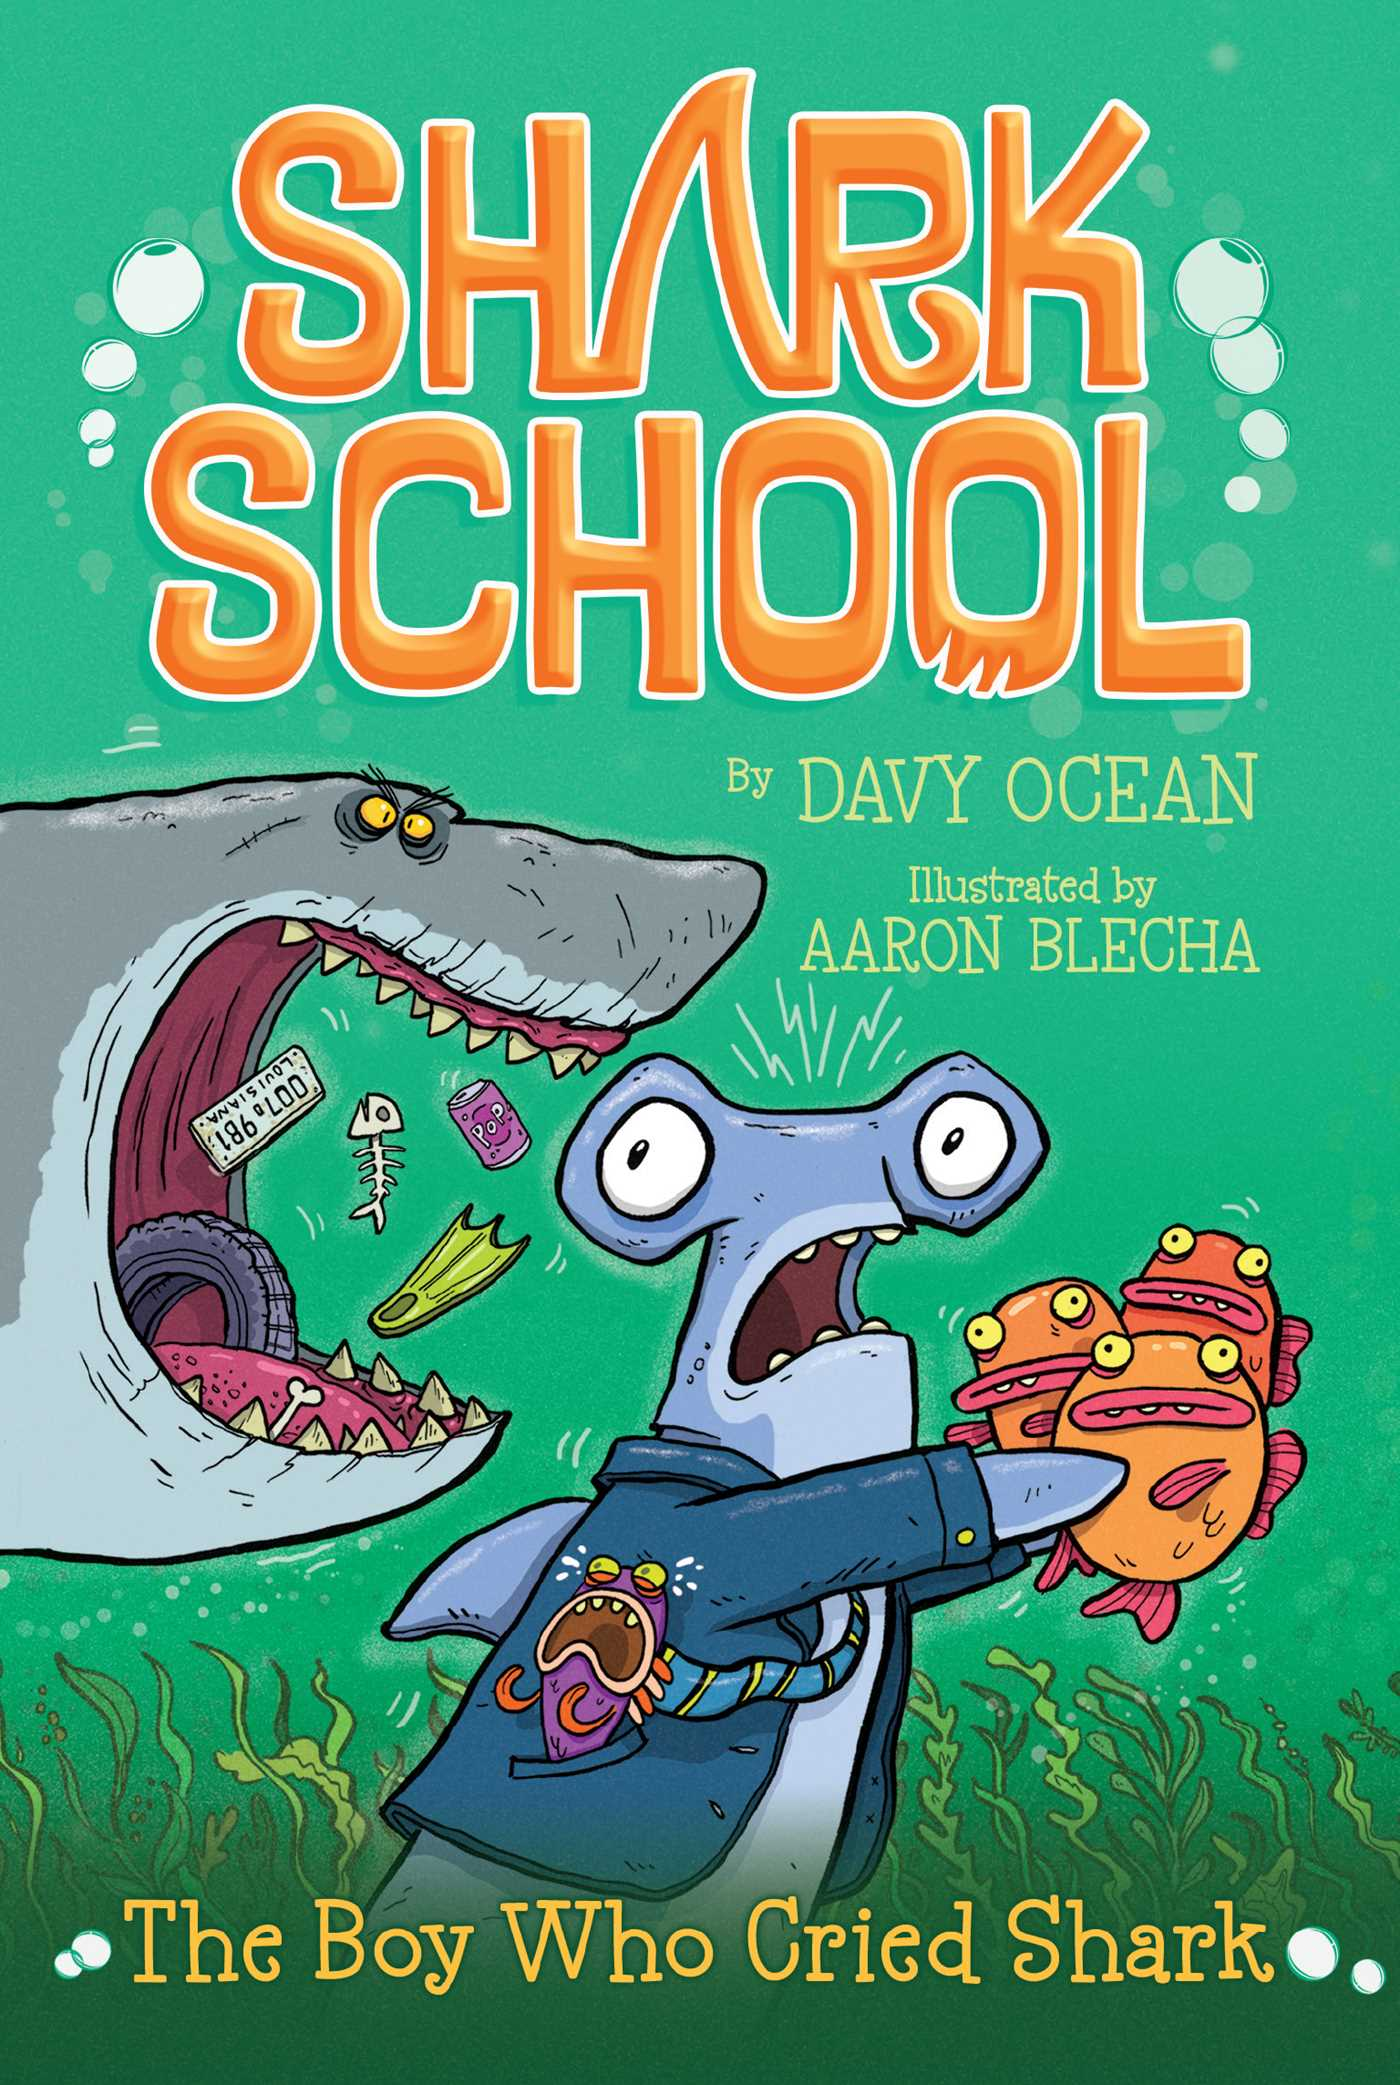 The boy who cried shark book by davy ocean aaron blecha for Children s fish book